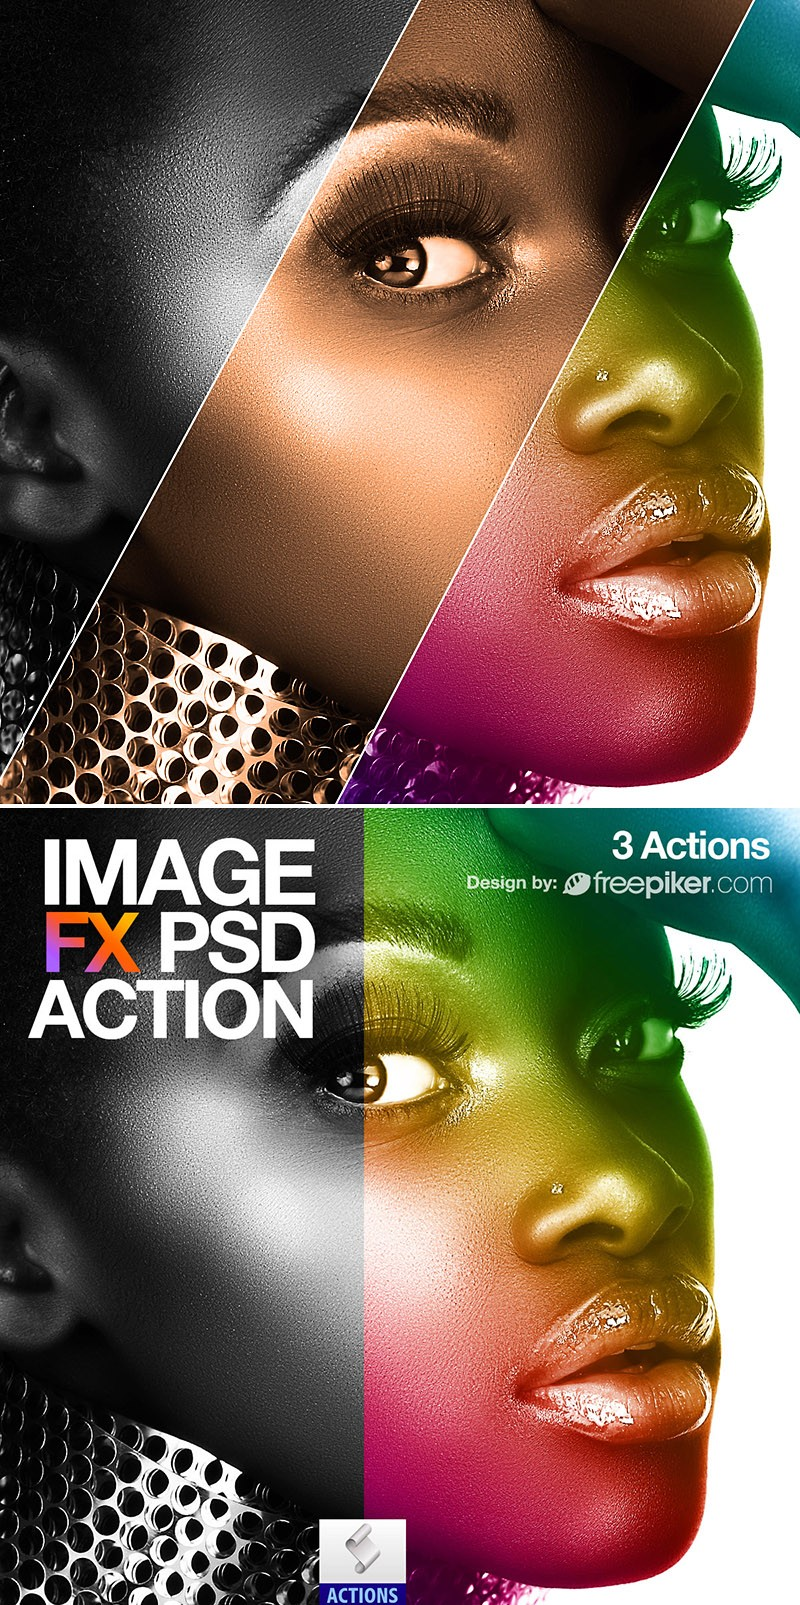 ImageFX PSD Action